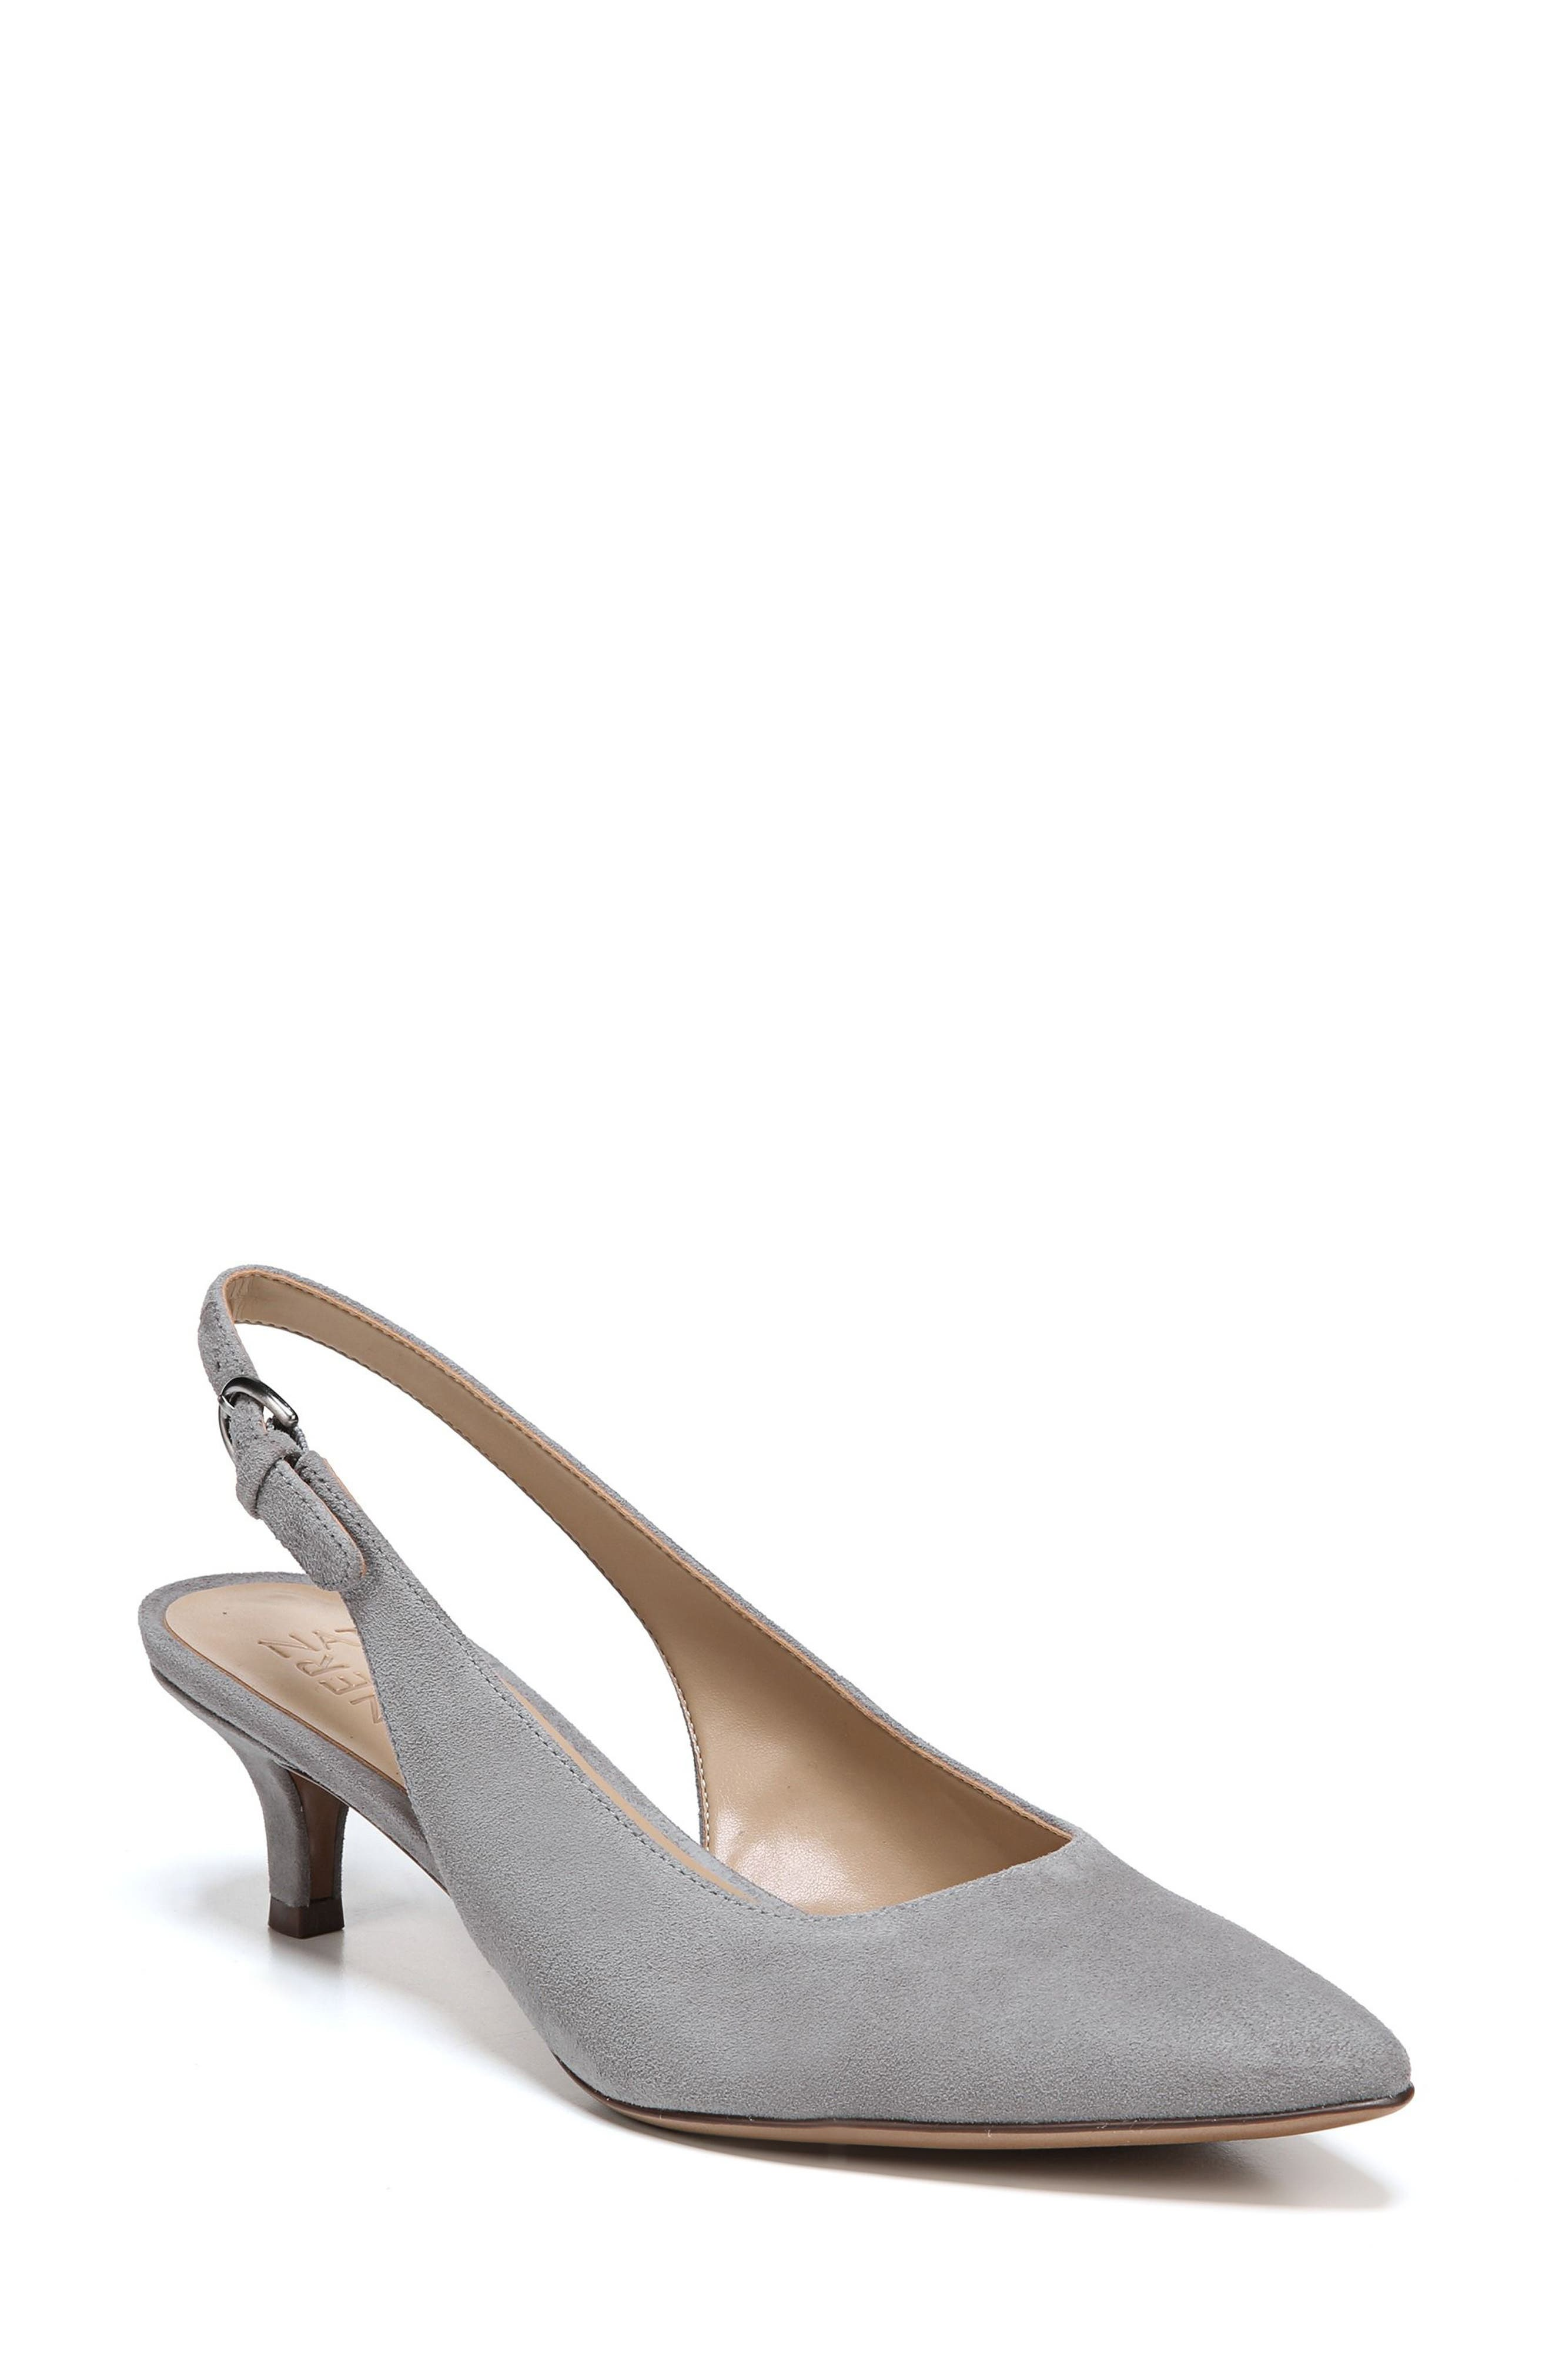 Slingback Pump,                             Main thumbnail 1, color,                             GREY SUEDE